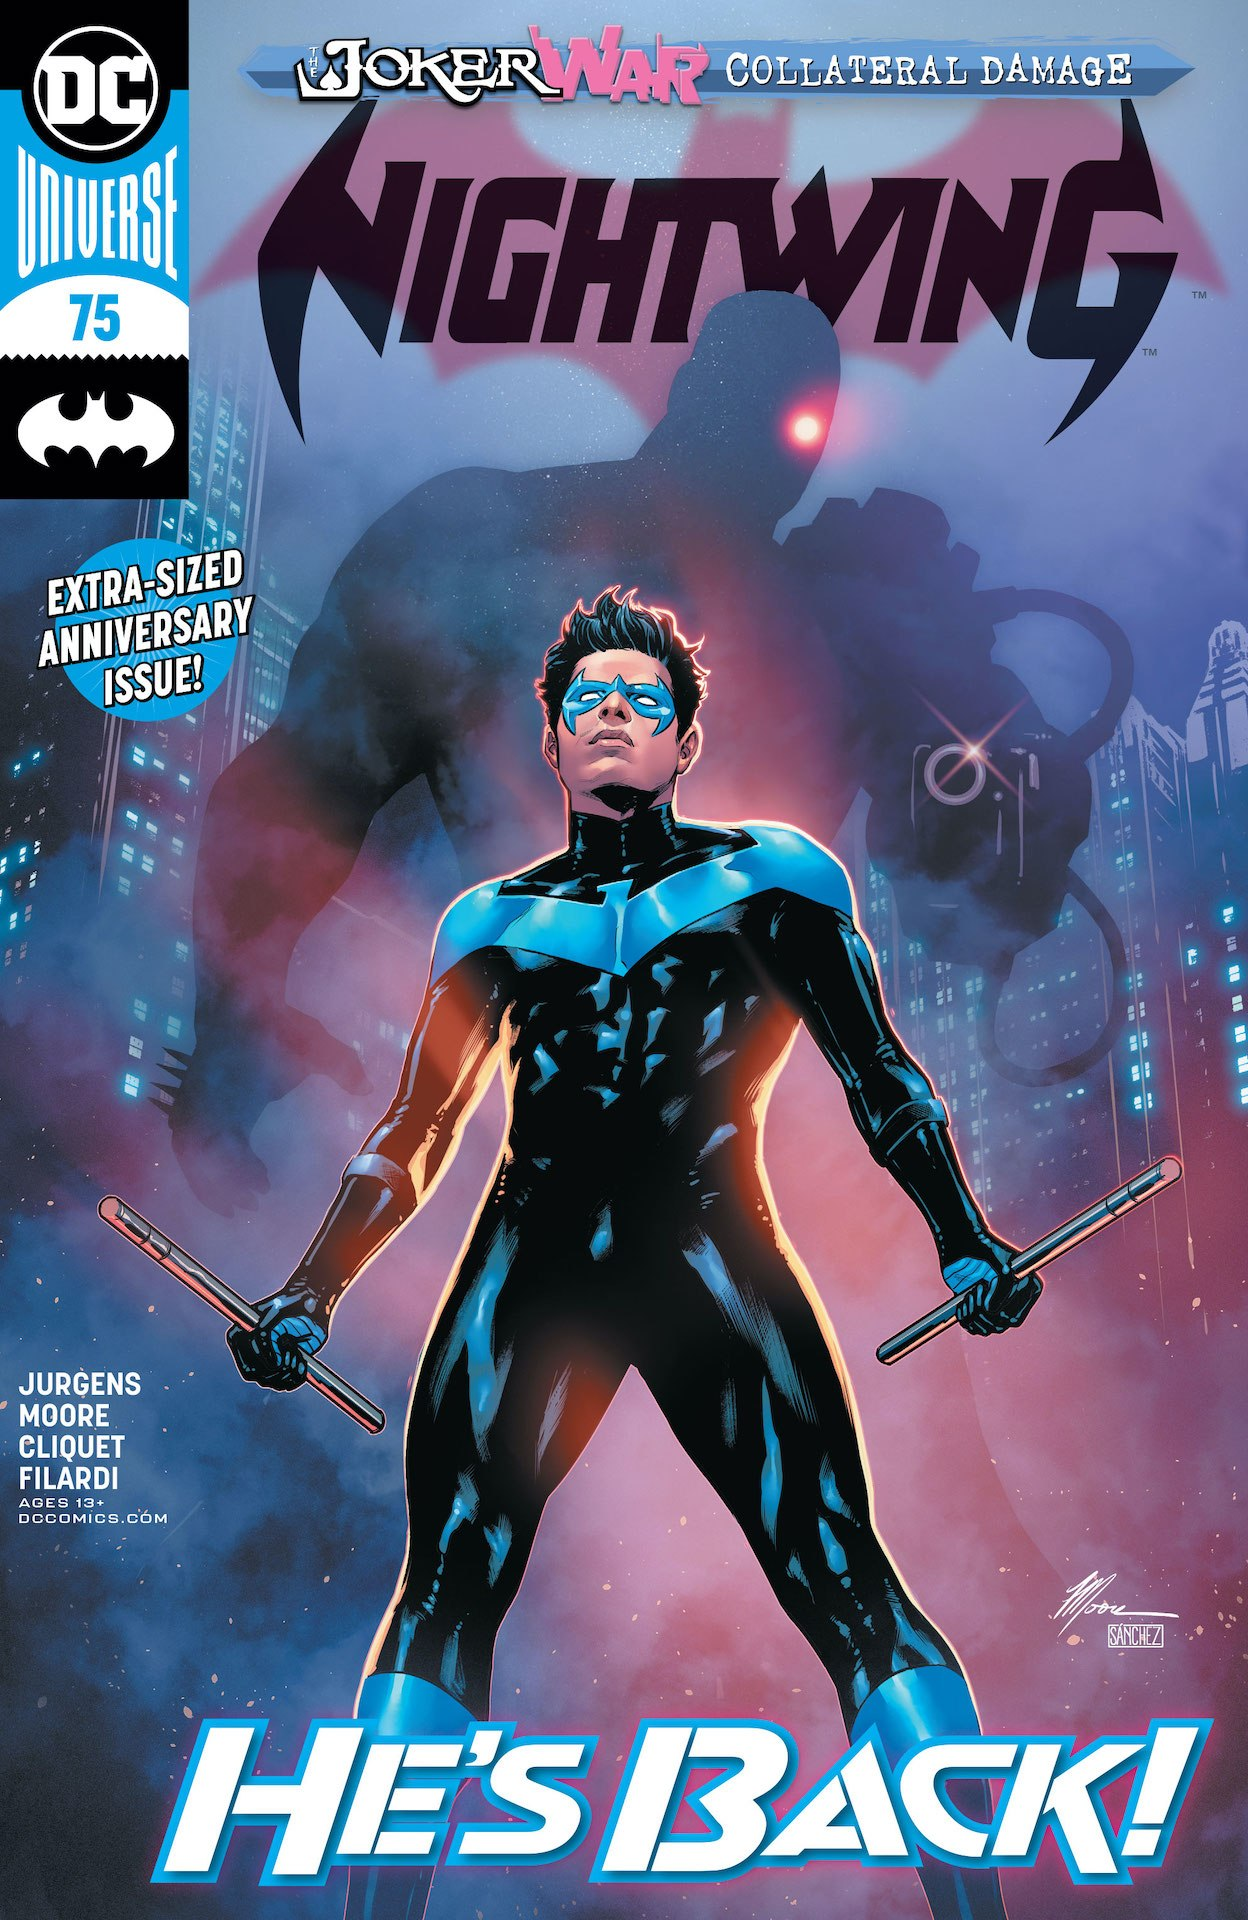 Nightwing #75 preview